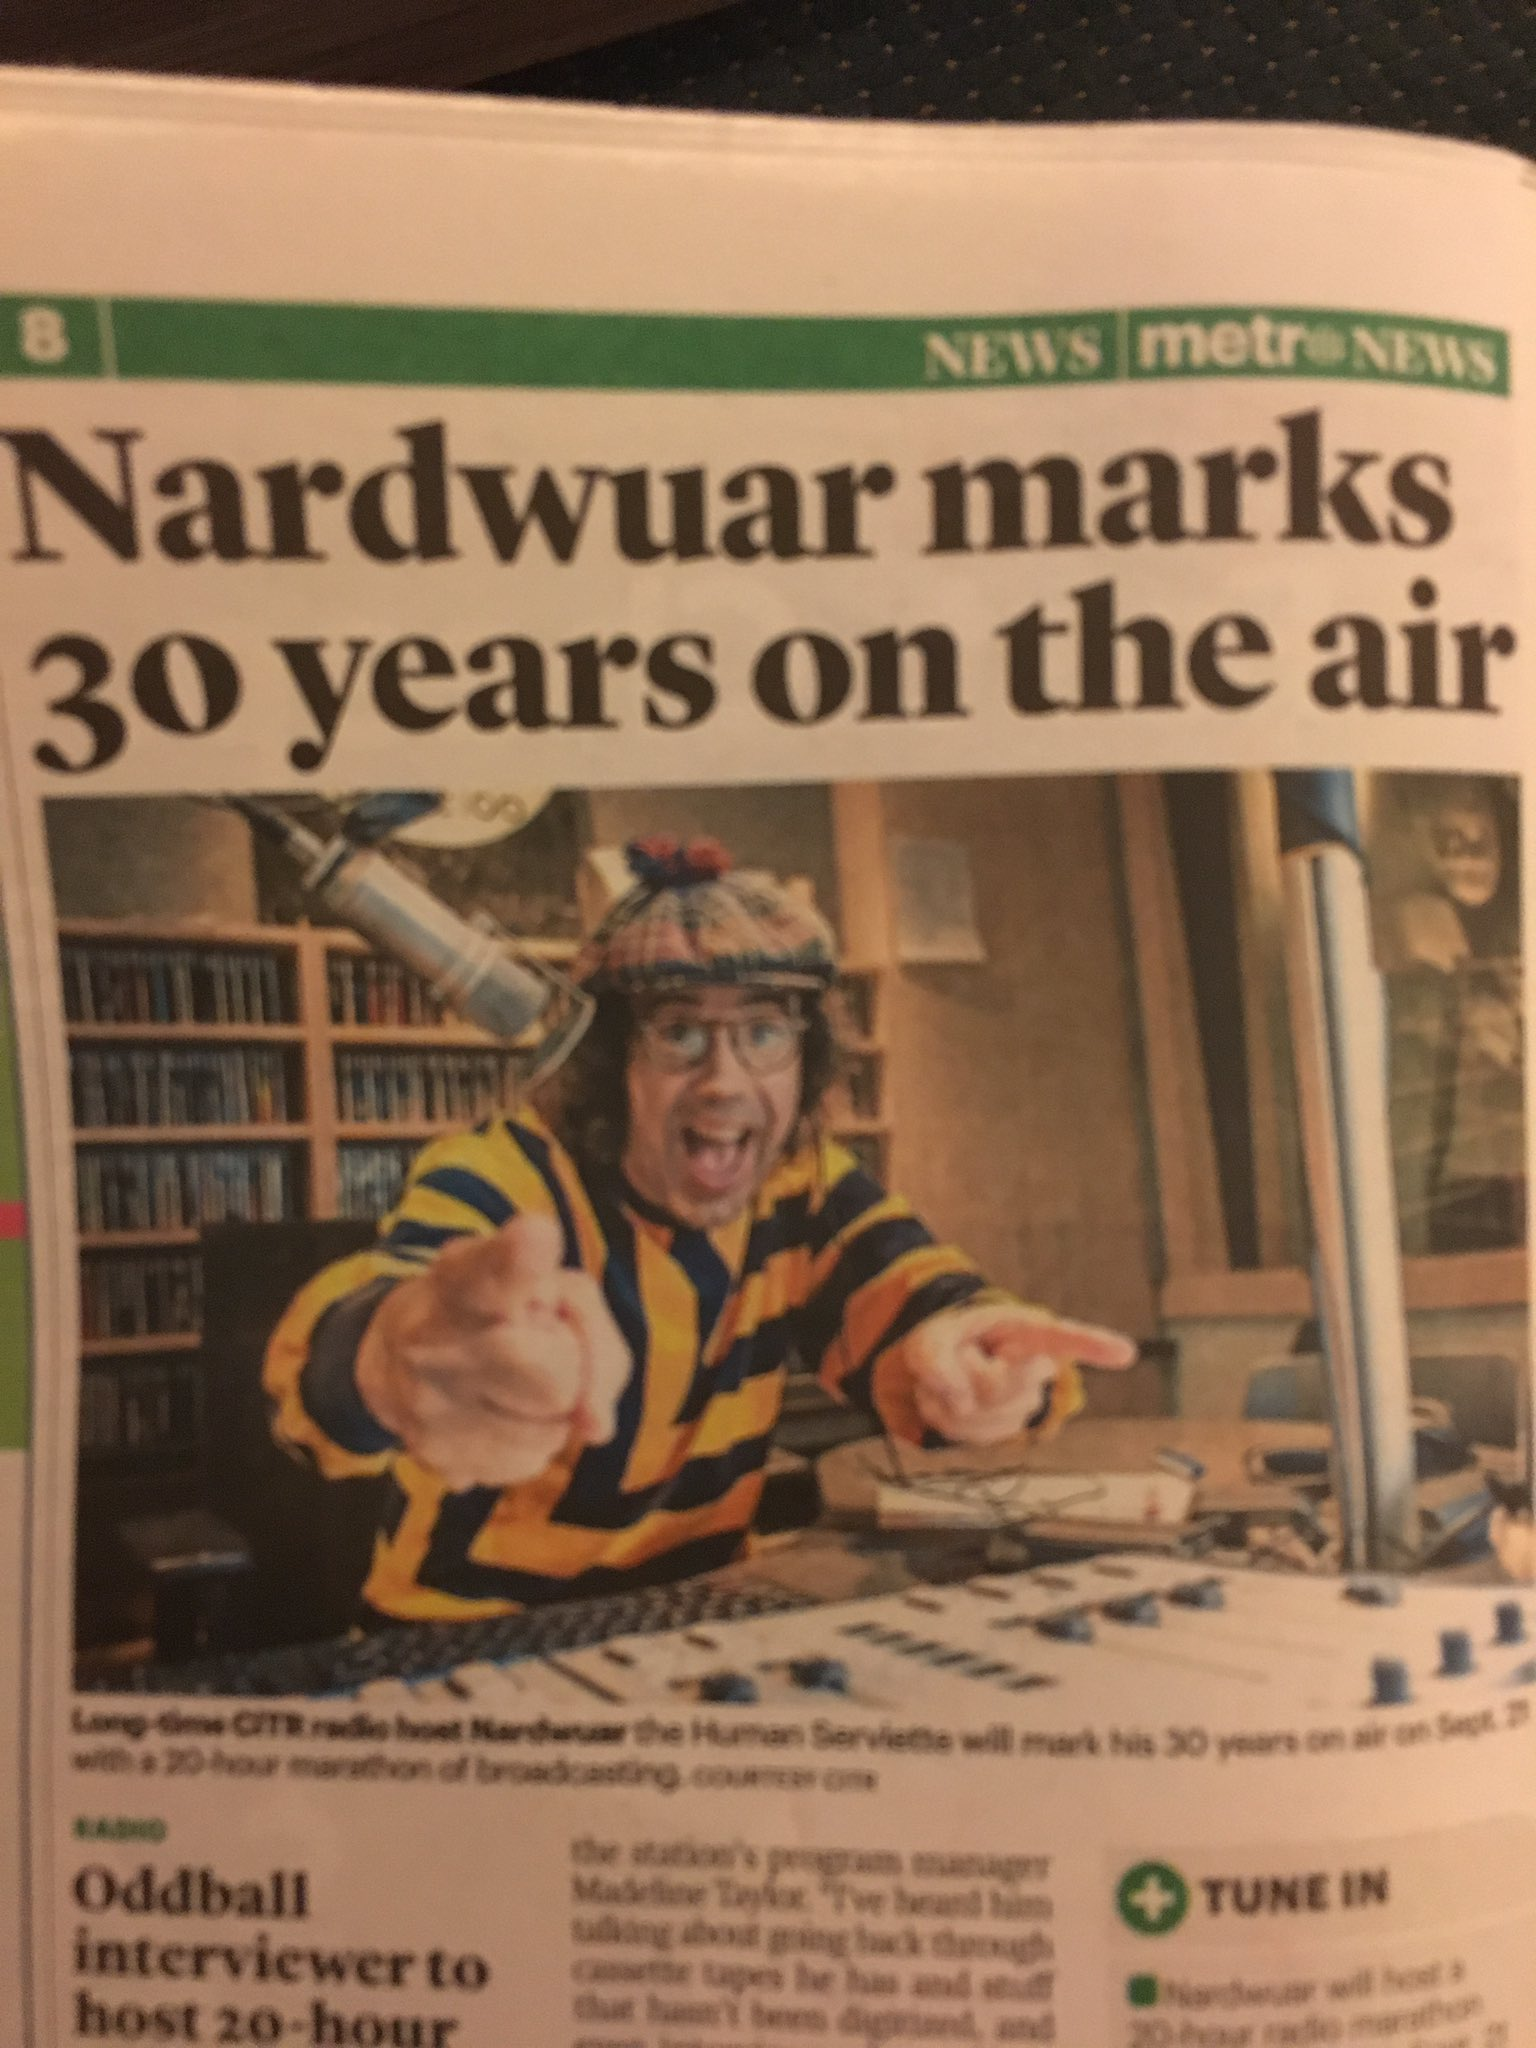 Marcus Parks On Twitter Can Anyone In Vancouver Put Us In Contact With This Nardwuar Fella Ask anything you want to learn about marcus parks by getting answers on askfm. twitter